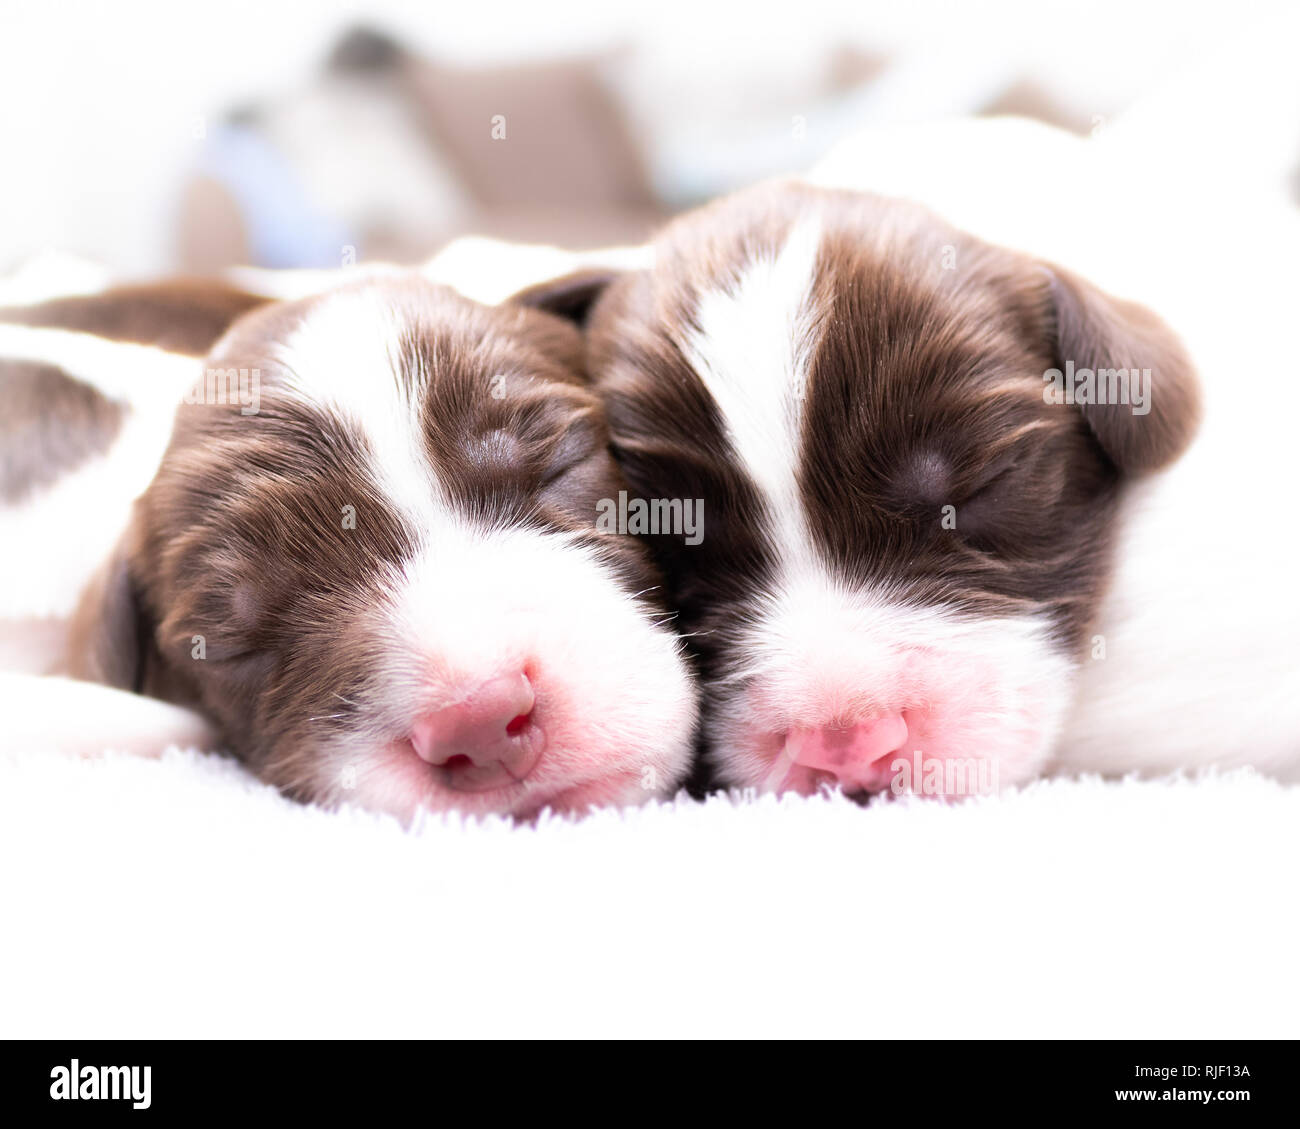 English Springer Spaniel Puppies - Stock Image